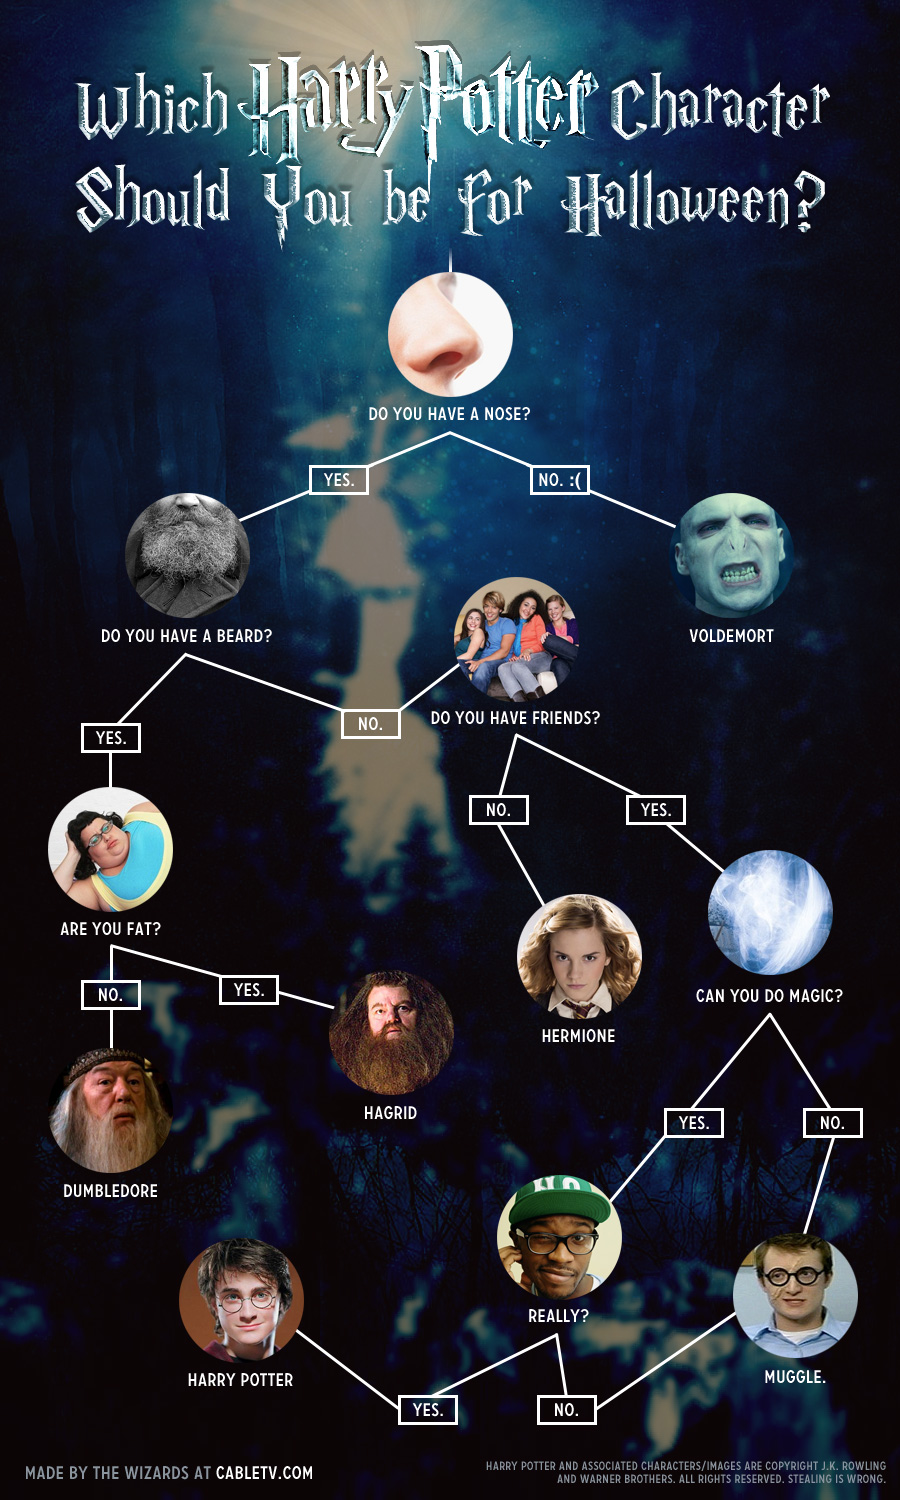 harry potter character are you: